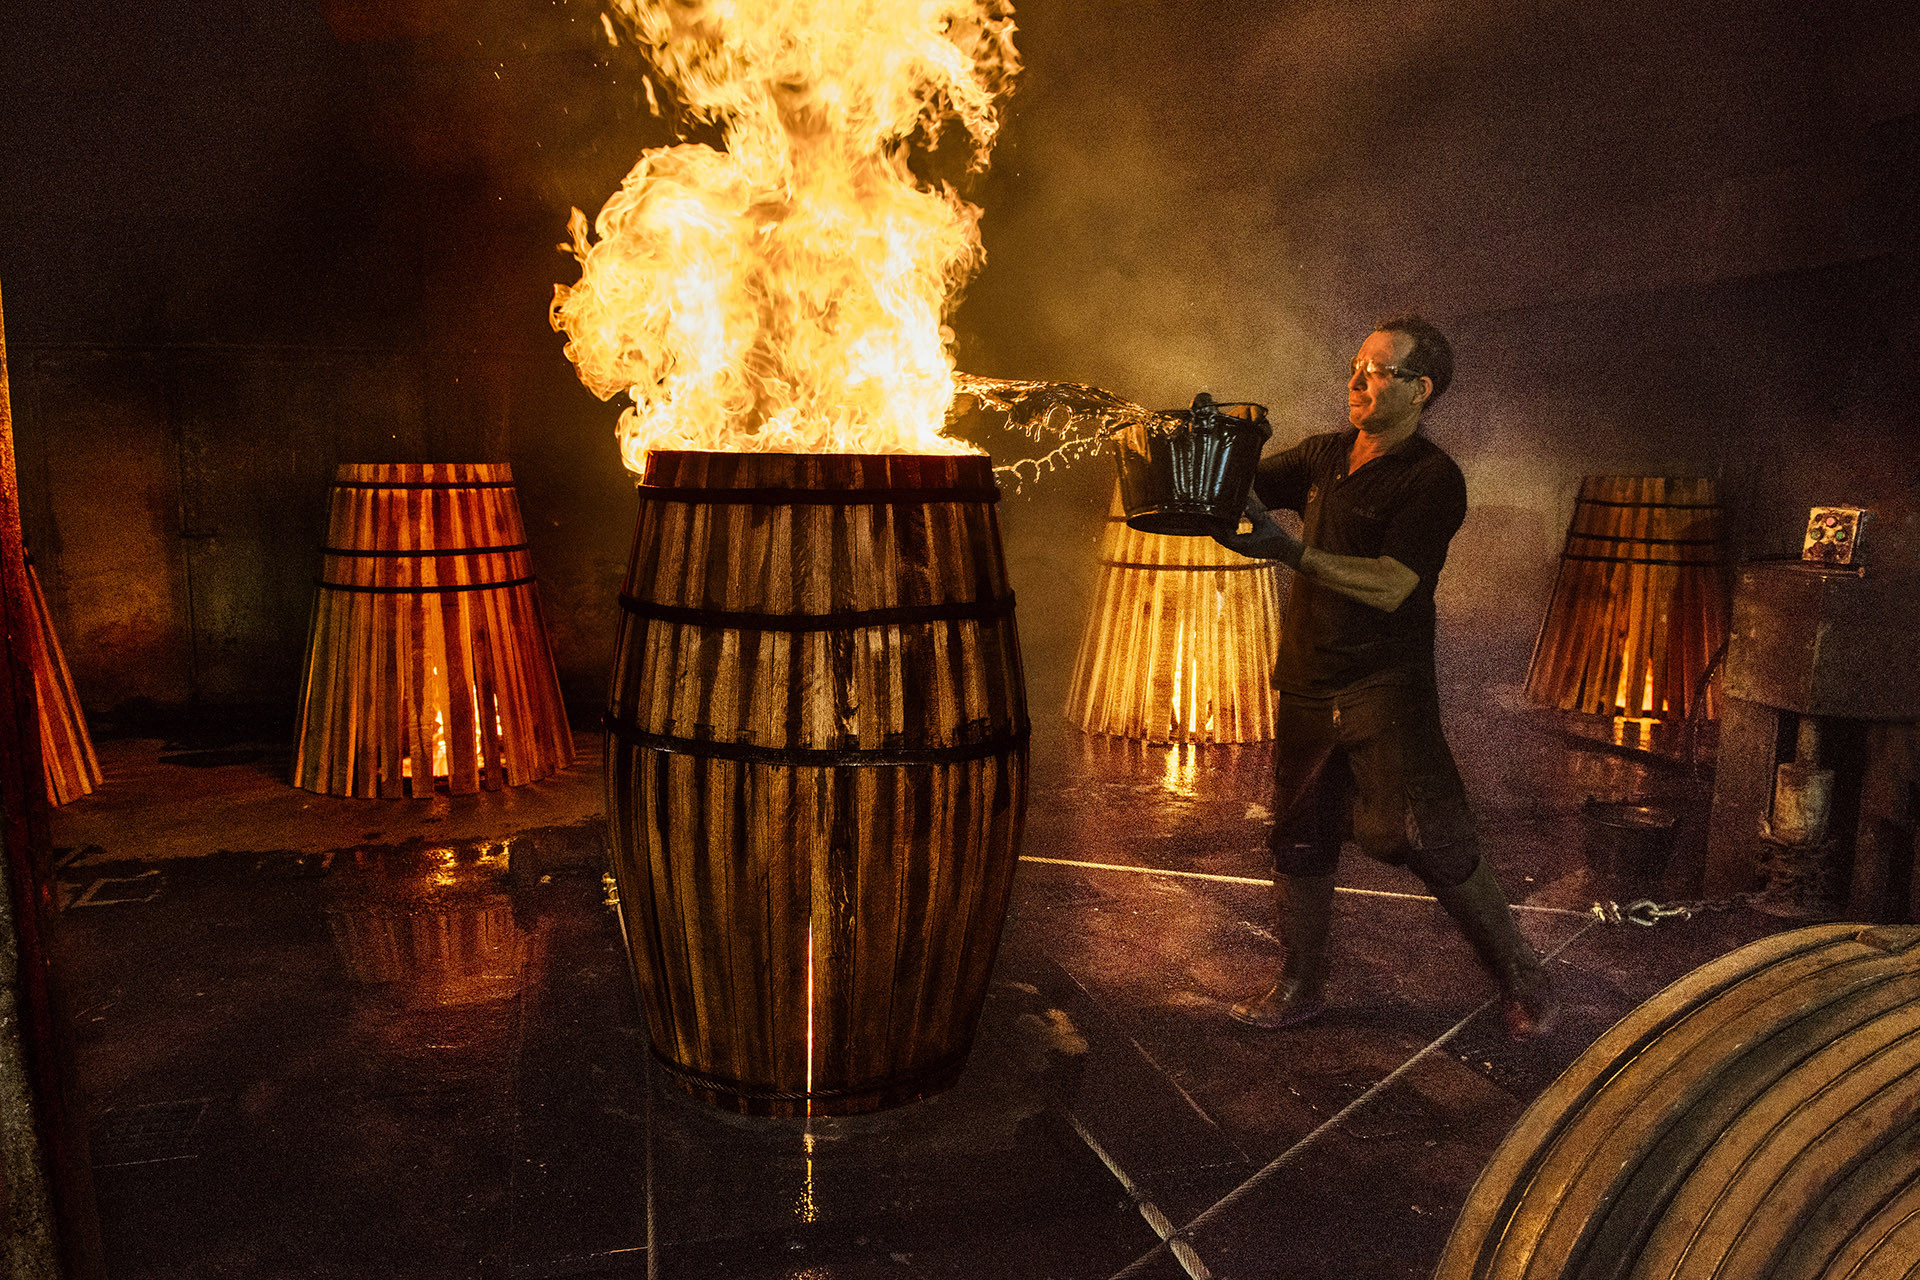 The Macallan Double Cask by Steve McCurry